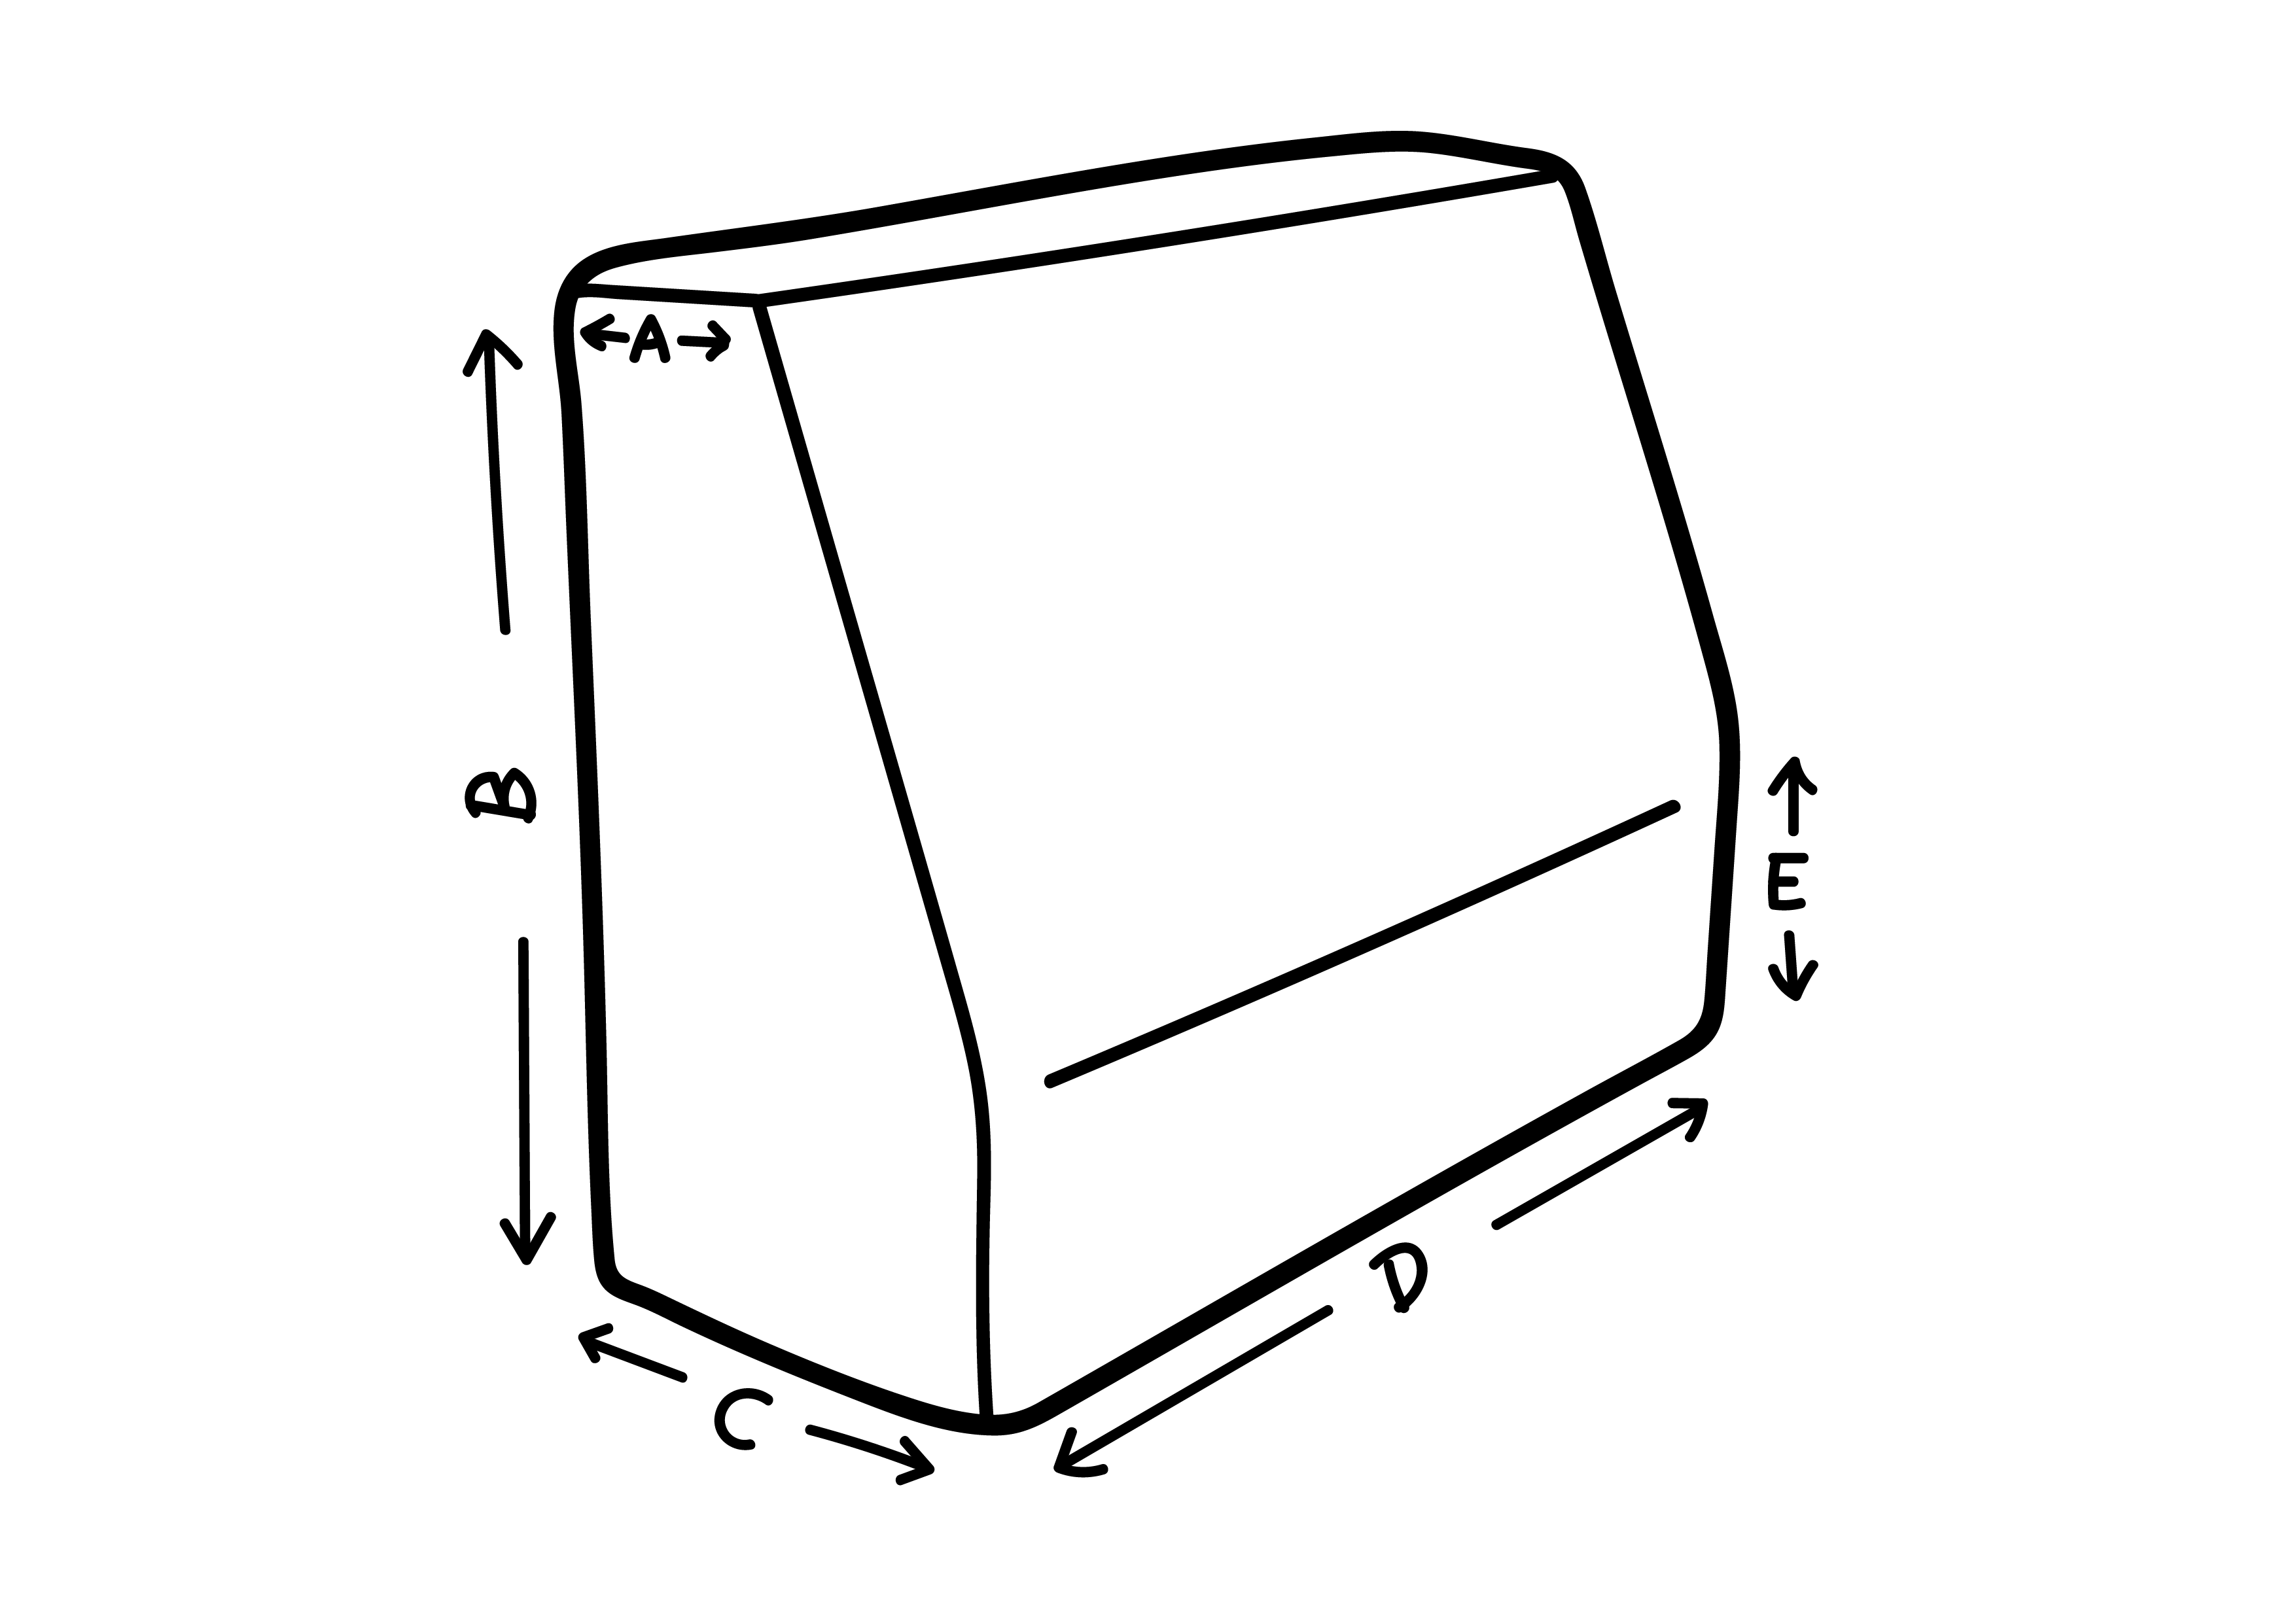 wedge-back-clipped-edge-dimensions.png